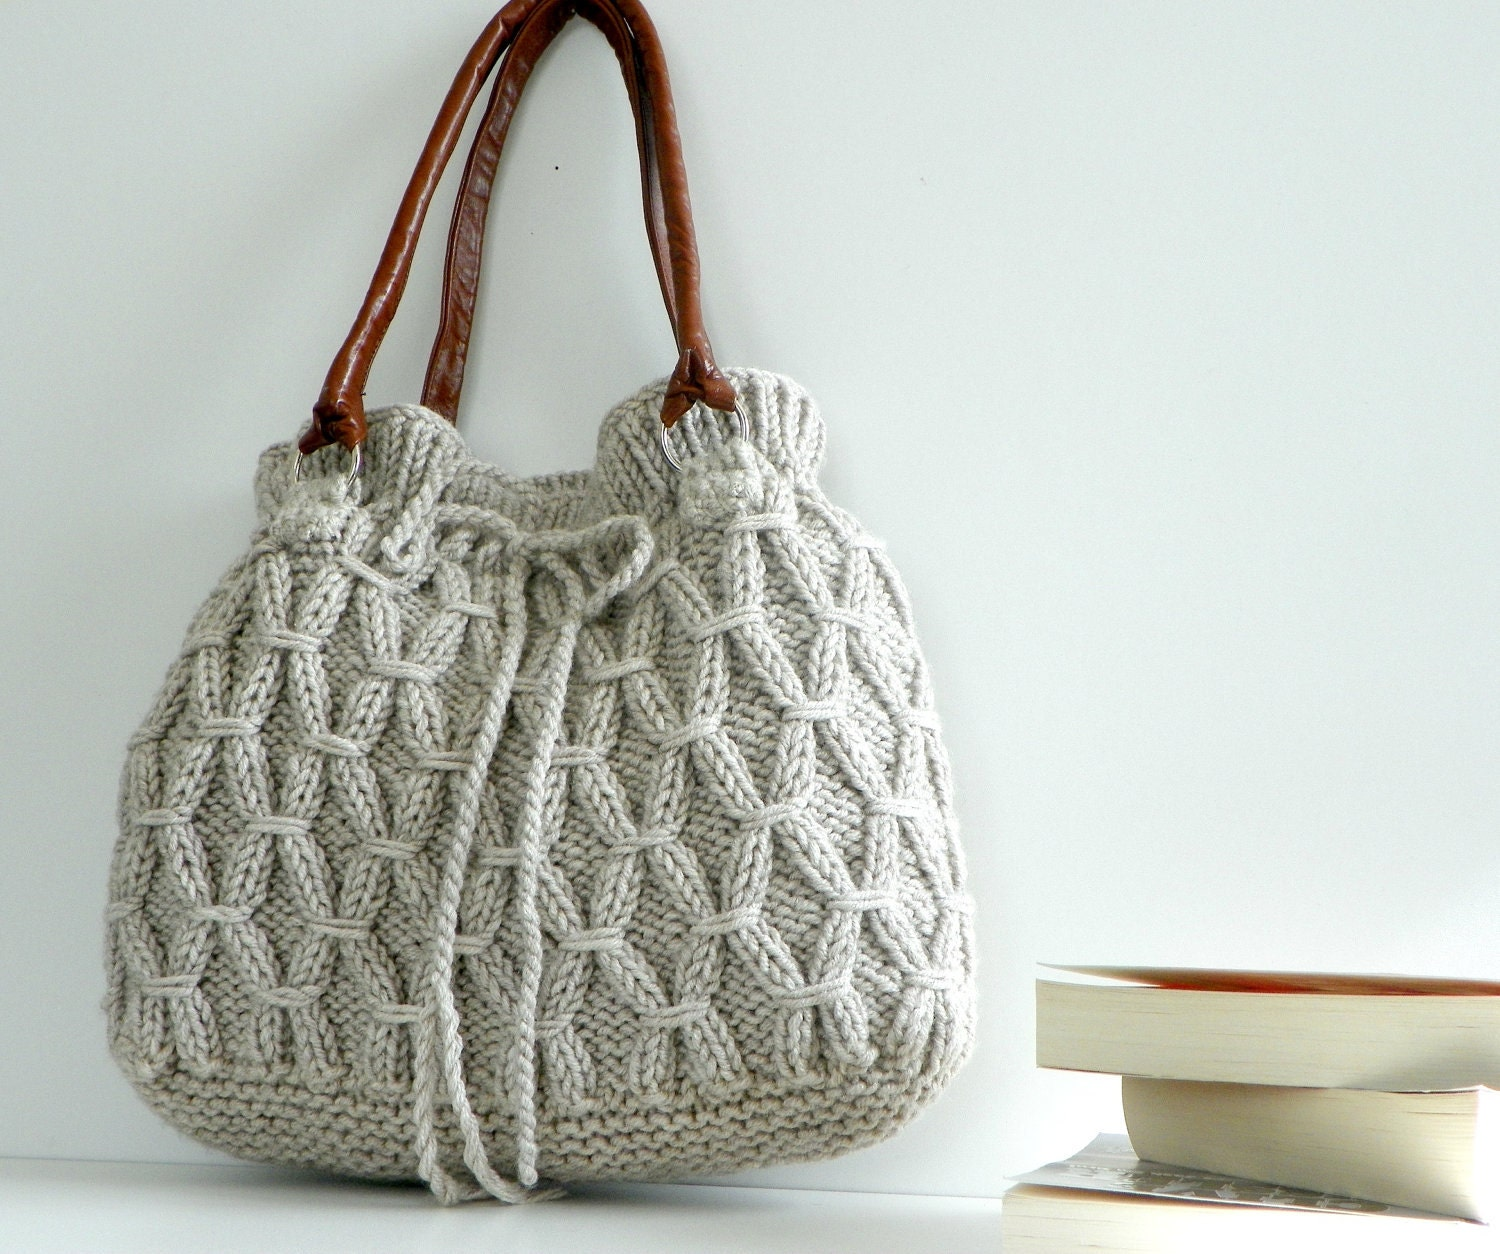 SALE OFF 20%, Knitted Bag, NzLbags - Beige-Ecru Knit Bag, Handbag - Shoulder Bag, Leather Strap Nr-0190